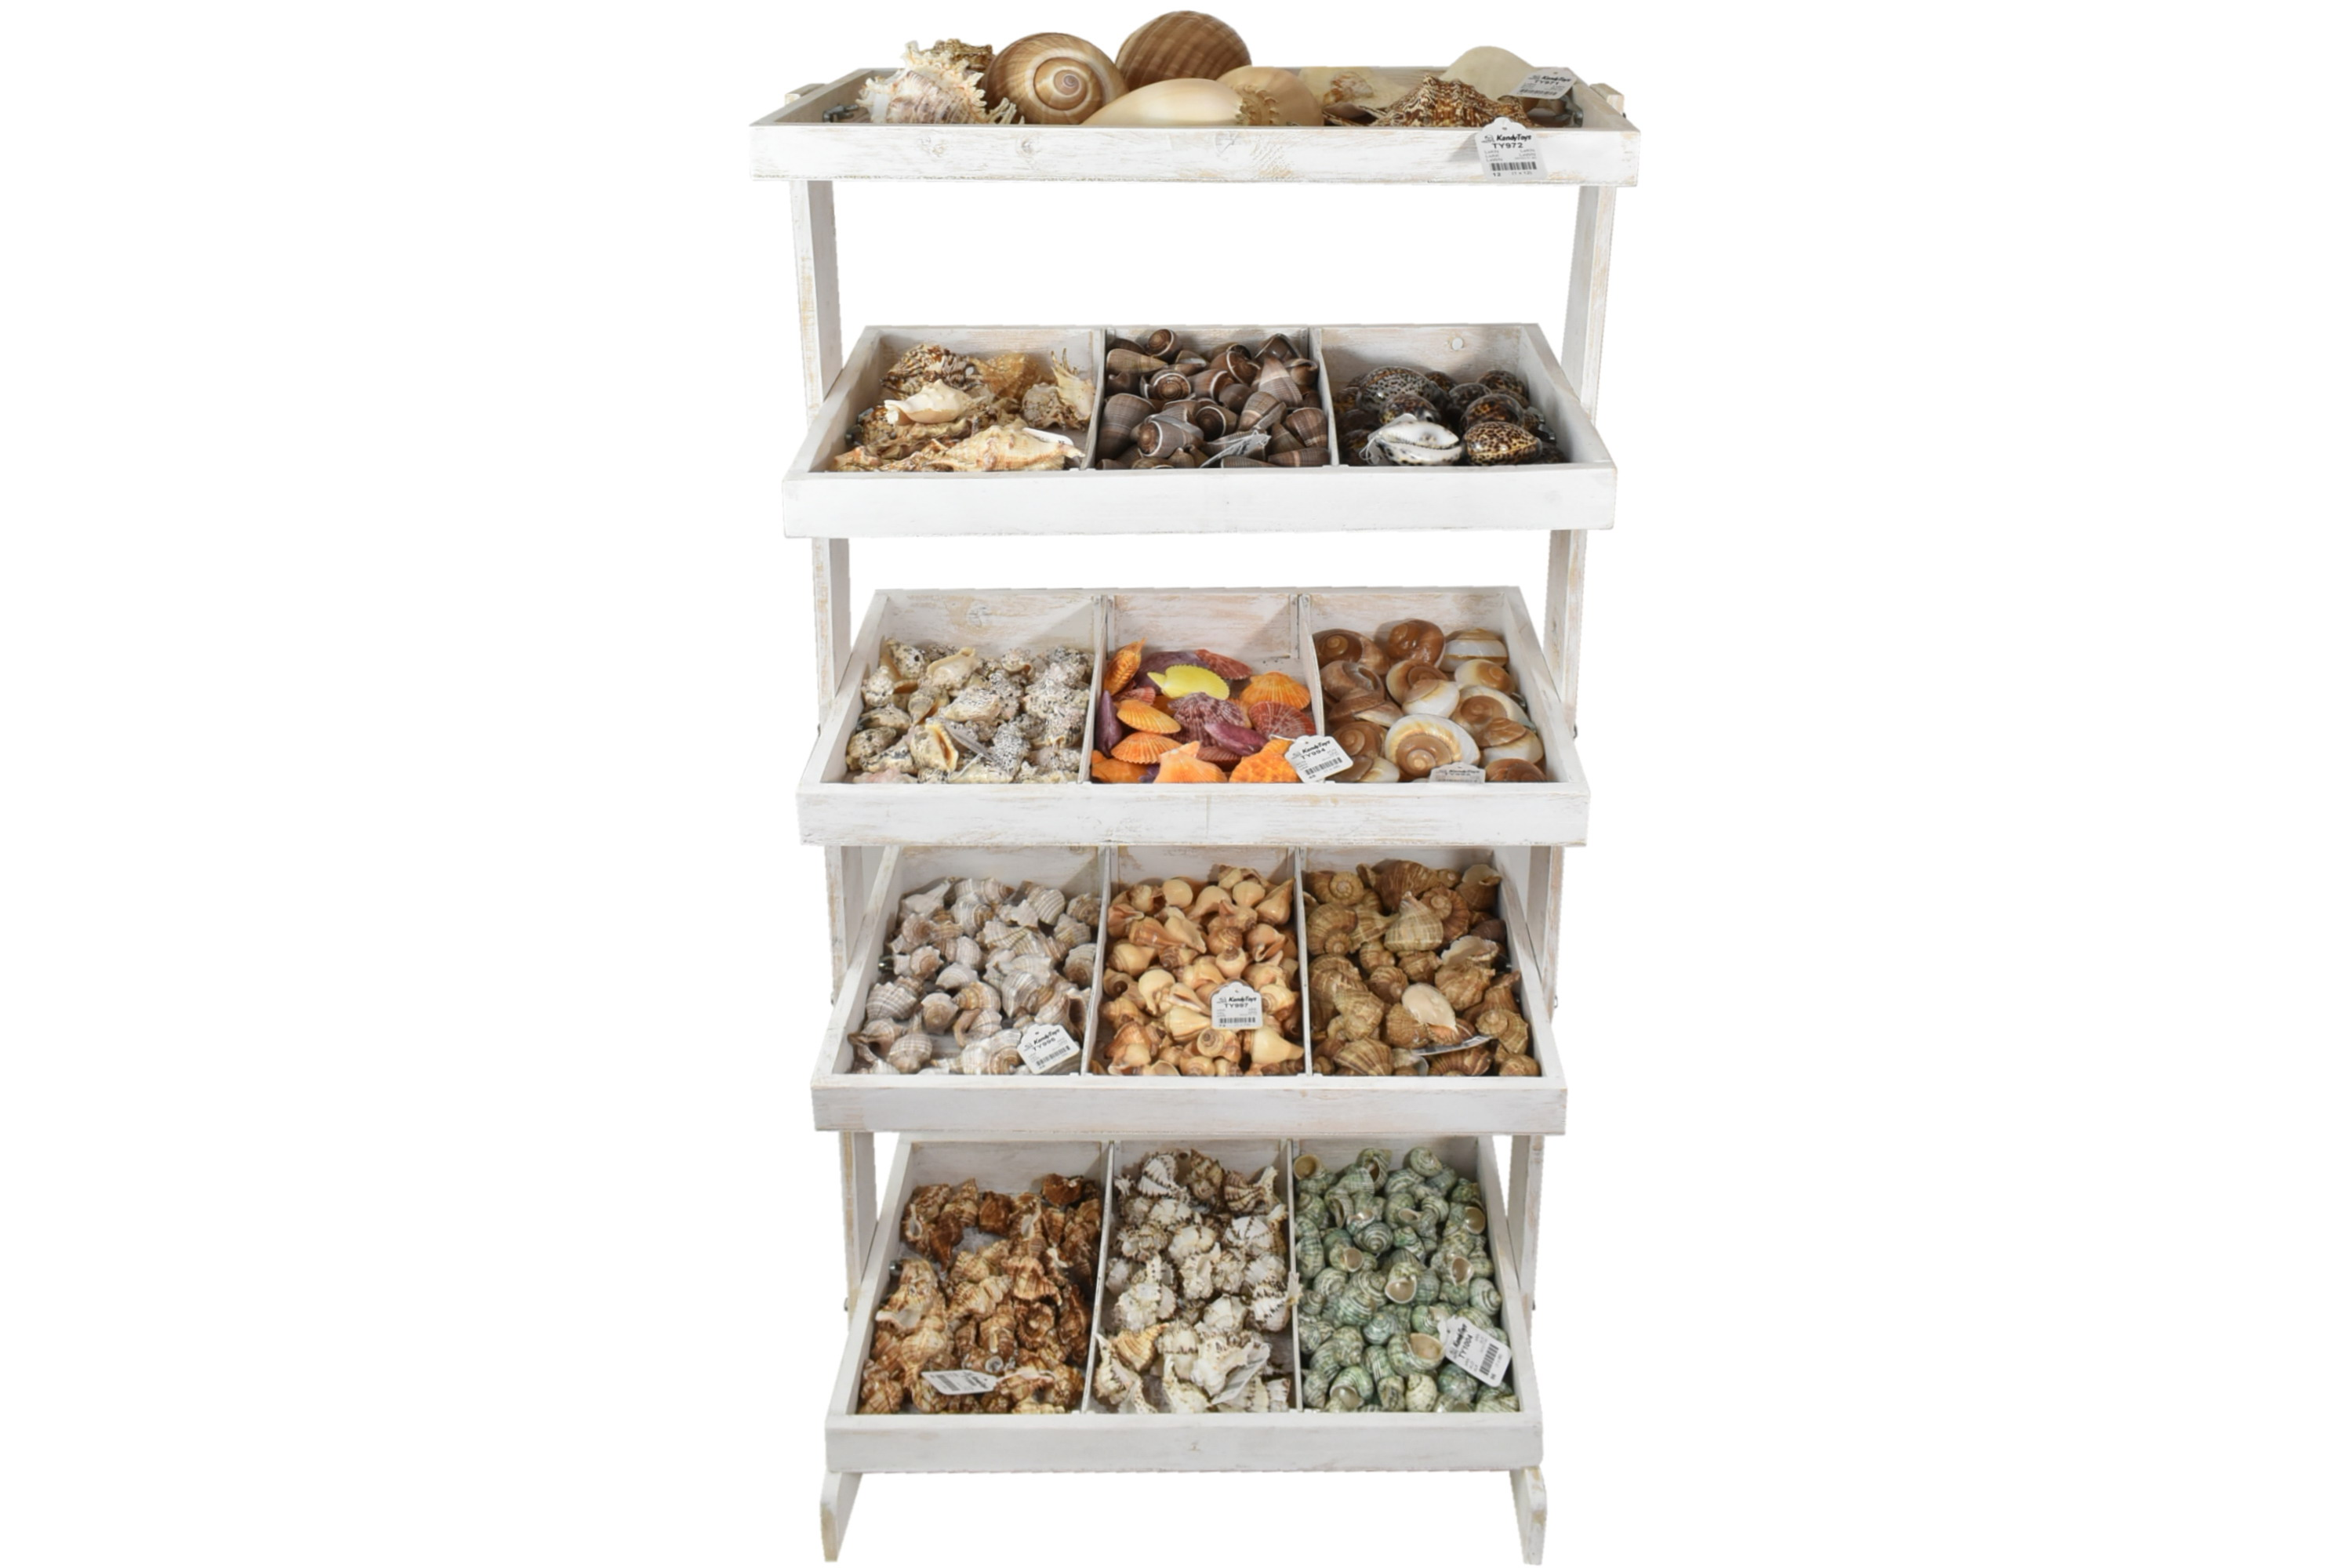 Shell Stand Shelves (1 Of 2)